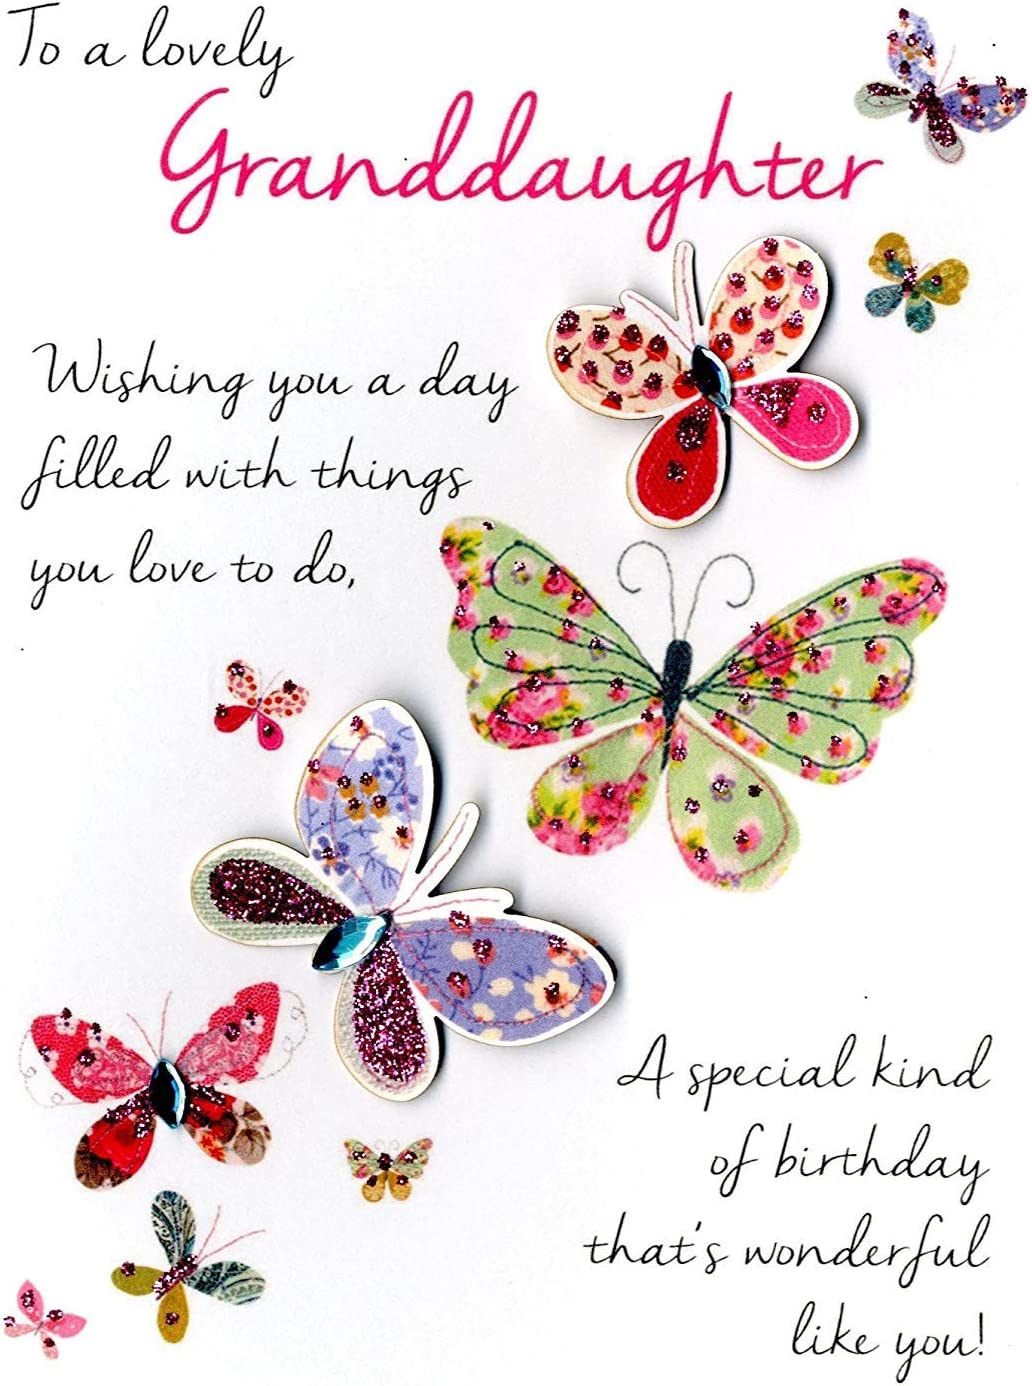 Lovely Granddaughter Birthday Greeting Card Second Nature Just To Say Cards